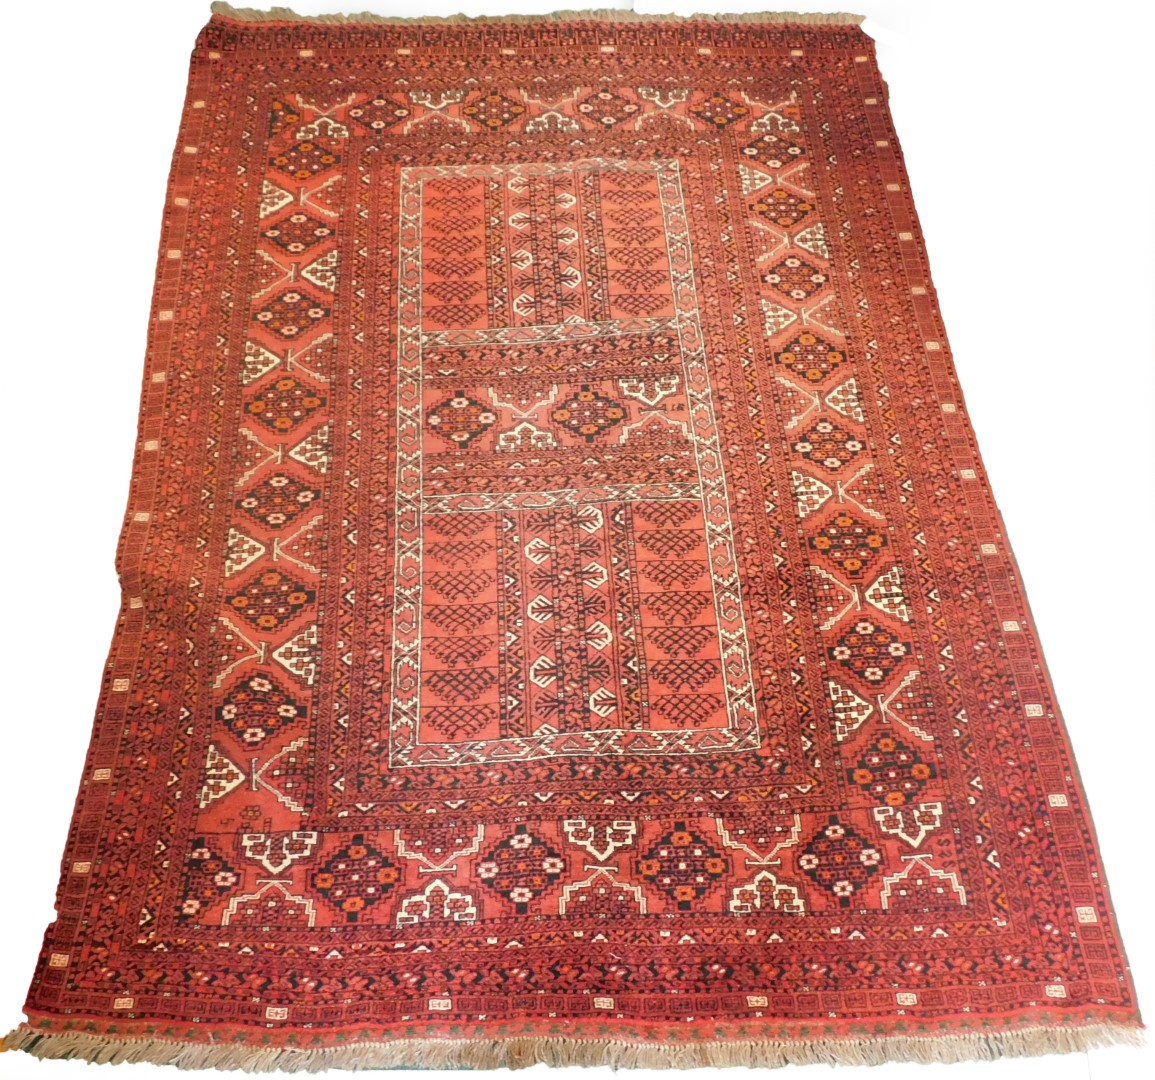 A Balouch type rug, with a design of medallions, on a red ground with multiple borders, 243cm x 171c